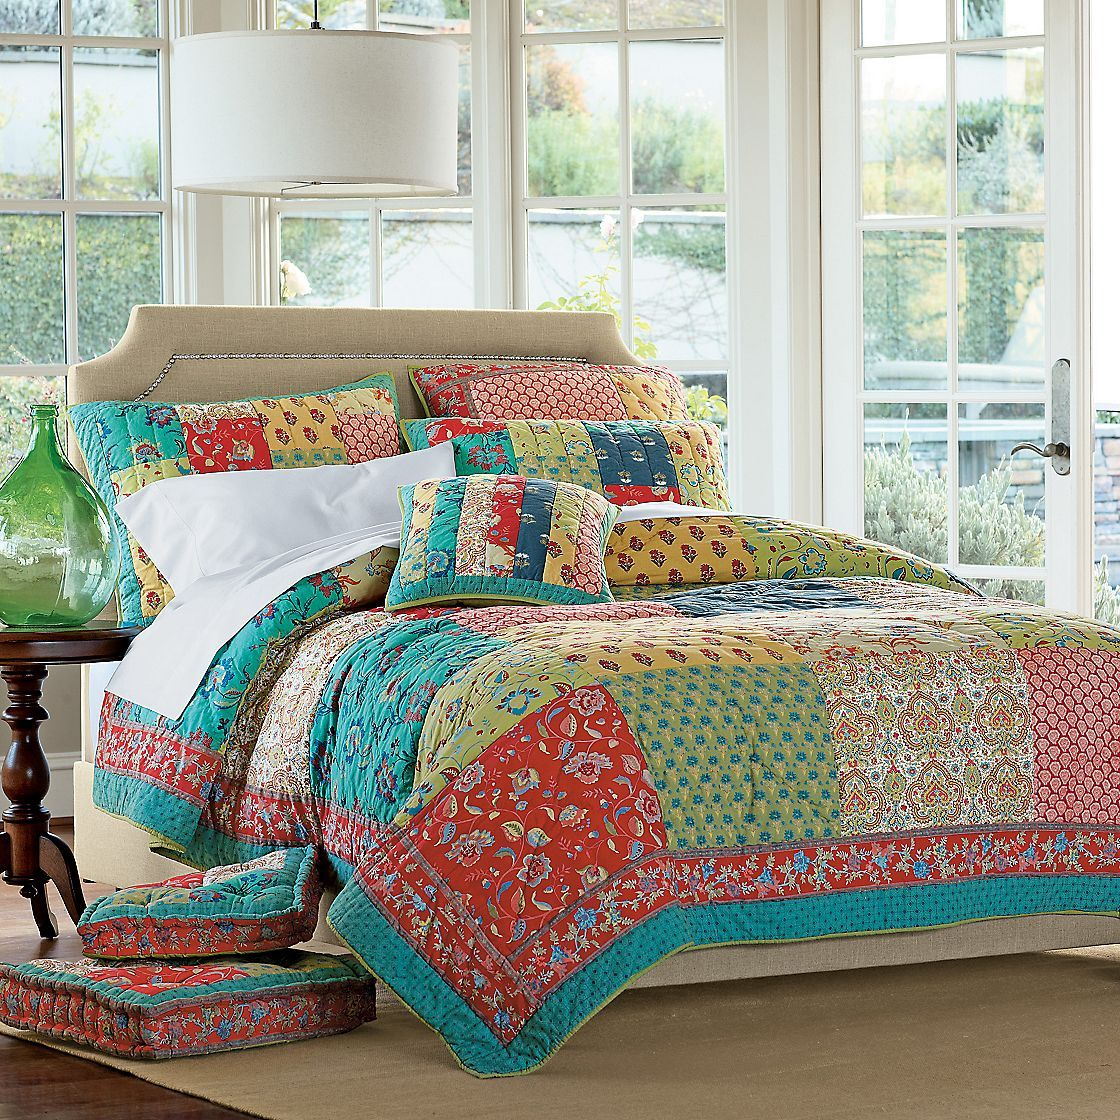 Kerala Handmade Patchwork Quilt | The Company Store